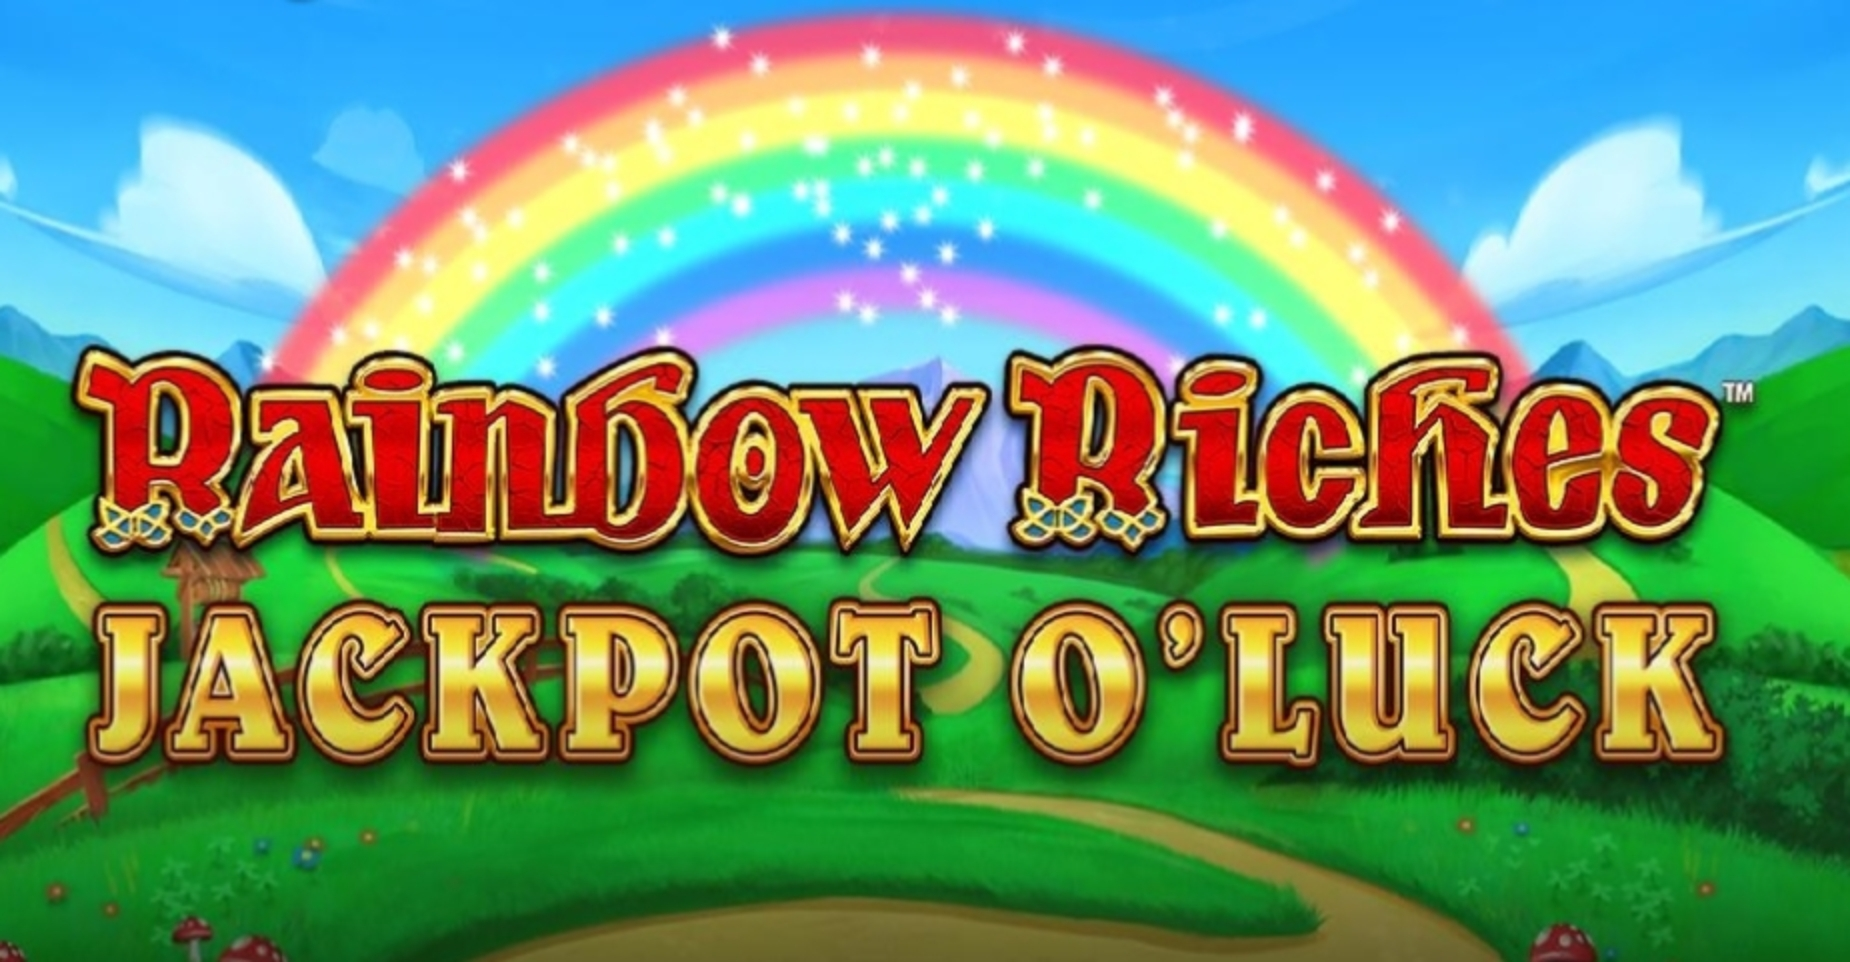 The Rainbow Riches Jackpot O Luck Online Slot Demo Game by Roxor Gaming